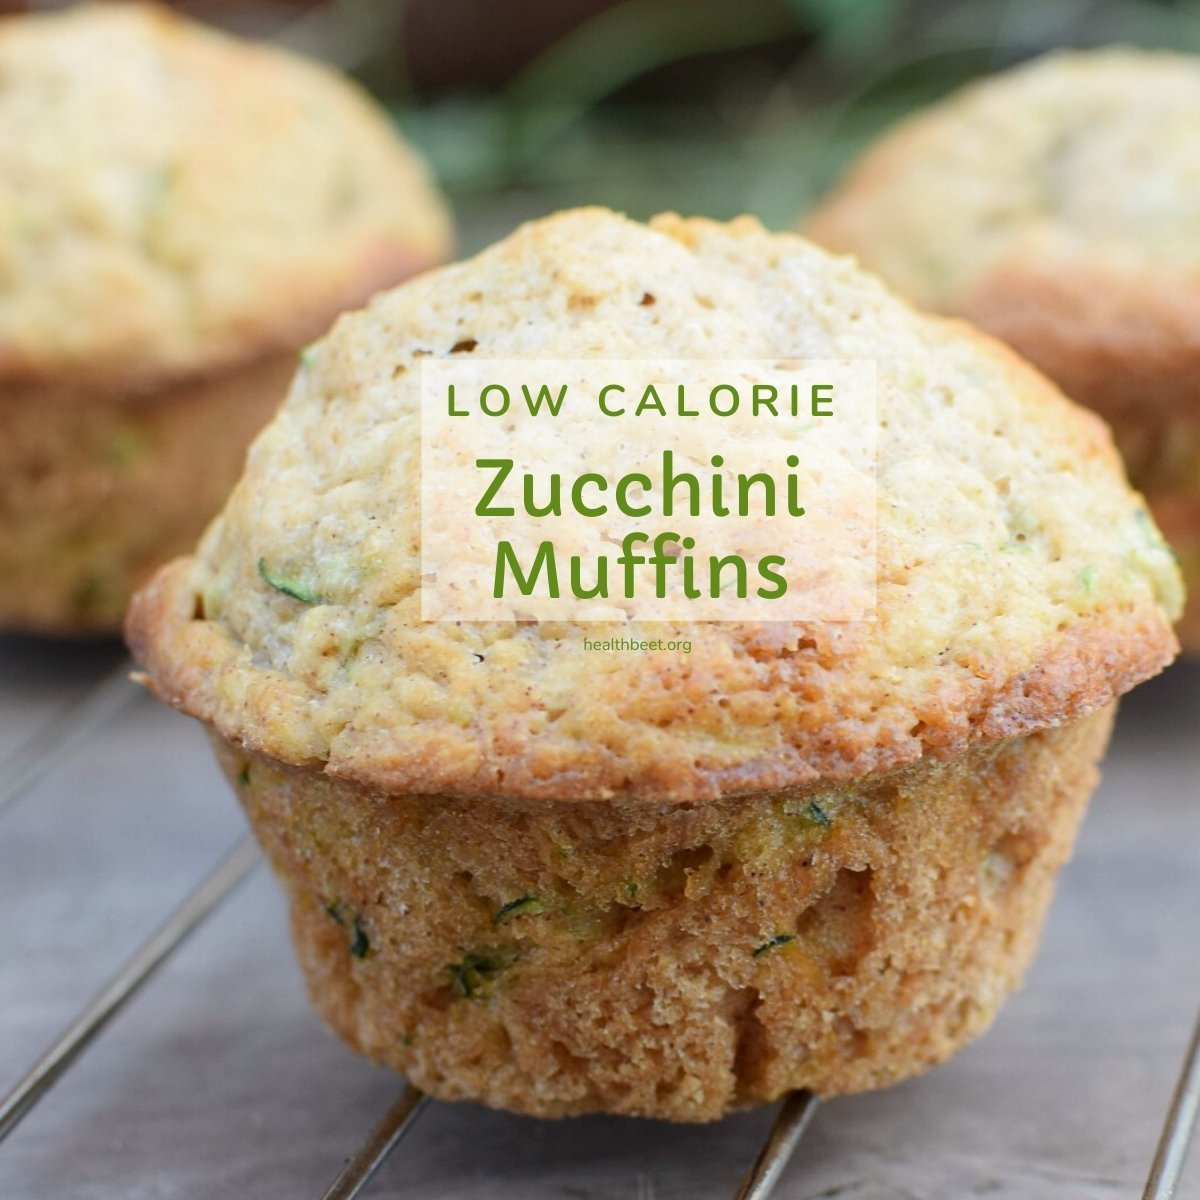 healthy and delicious low calorie zucchini muffins